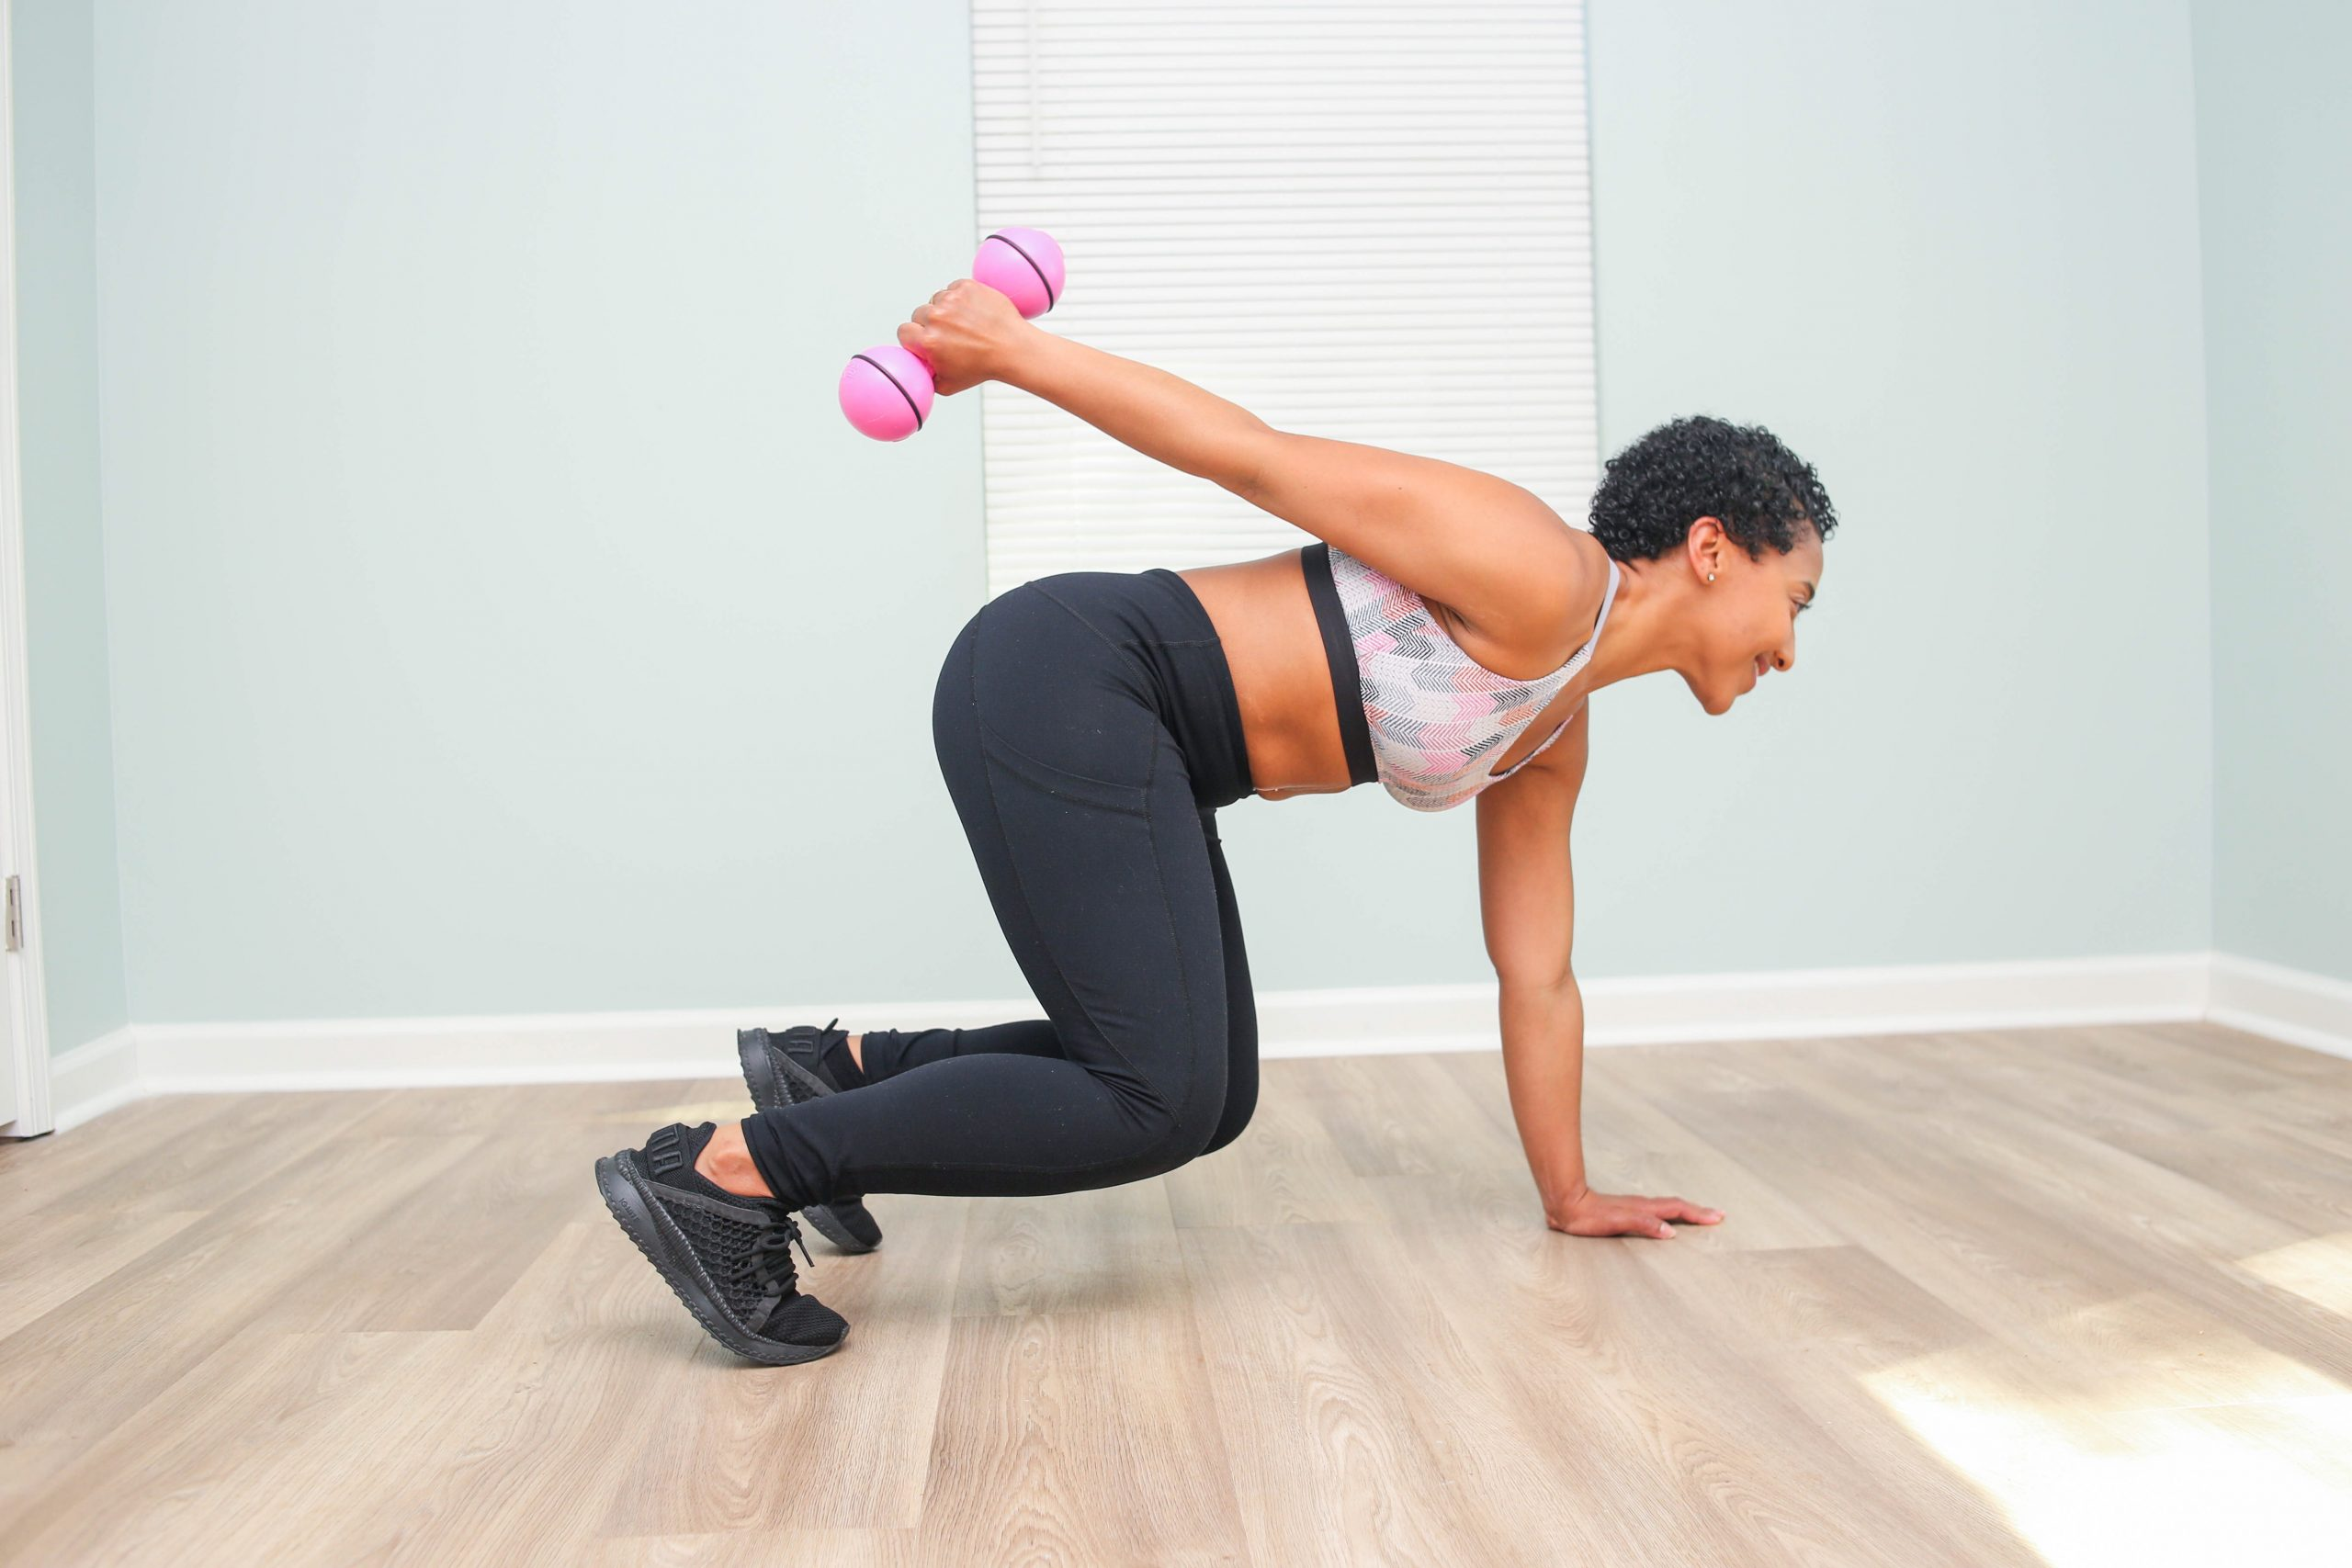 black woman working out: get fit during quarantine